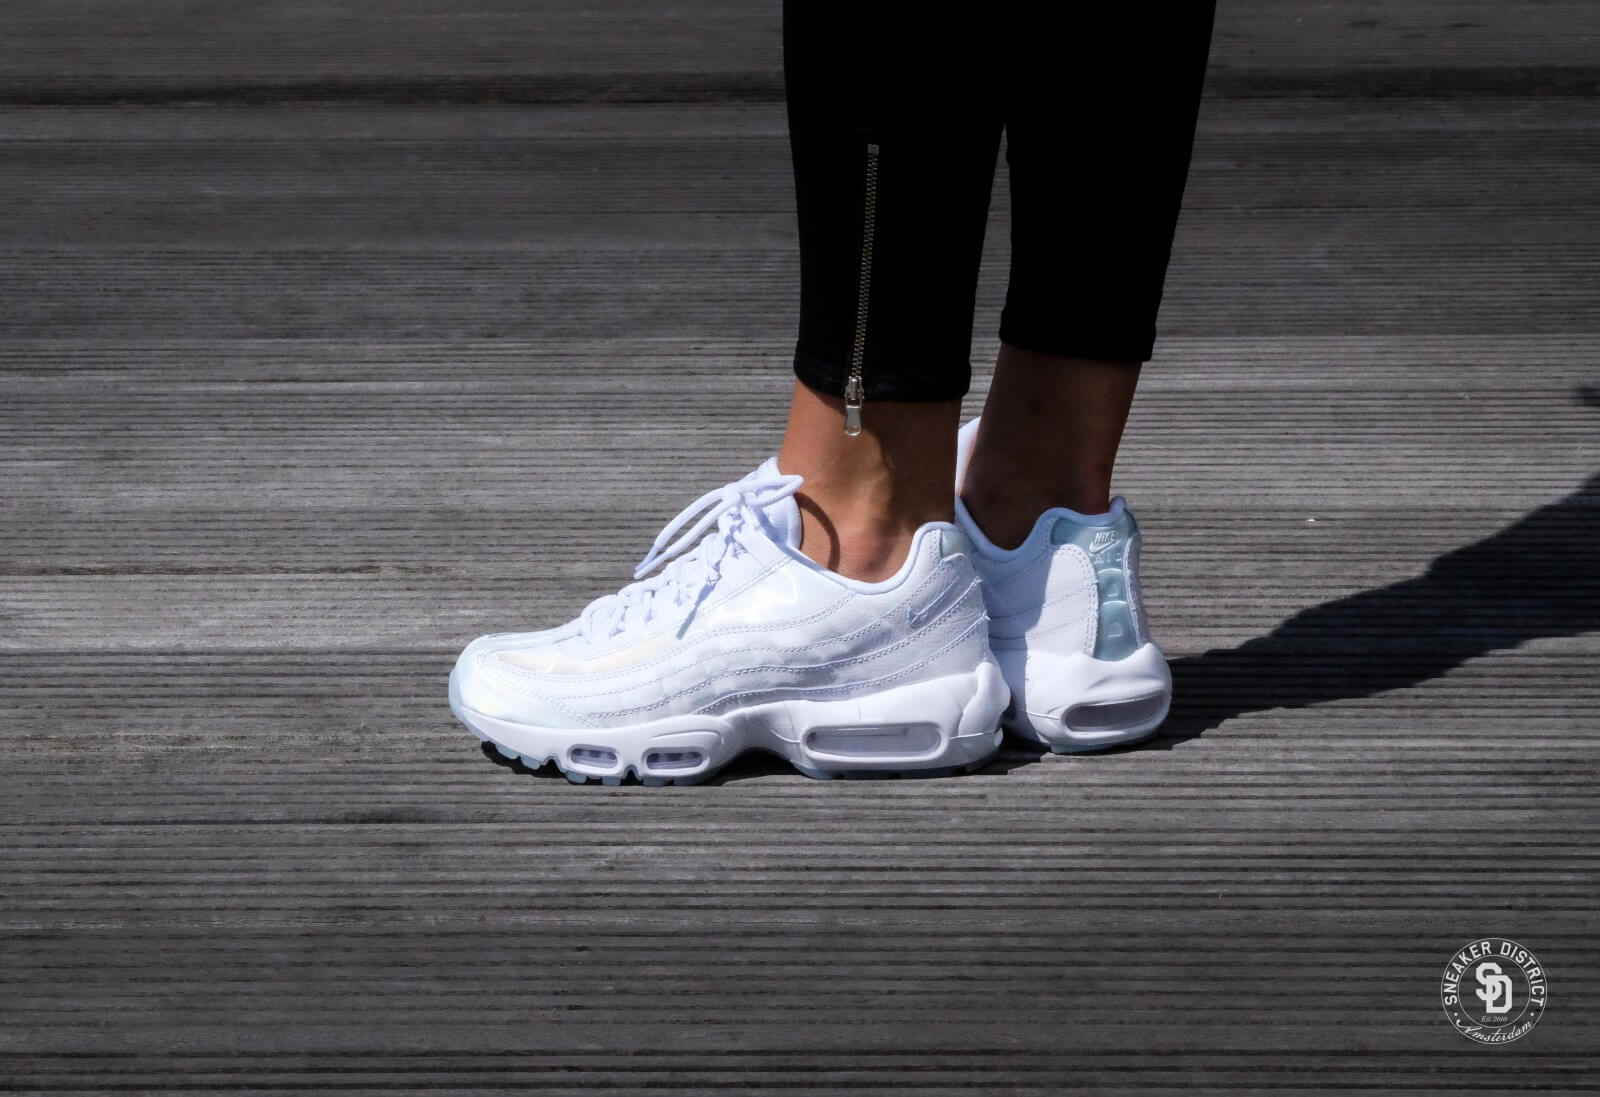 Nike WMNS Air Max 95 SE White/Pure Platinum-Ice - 918413-100